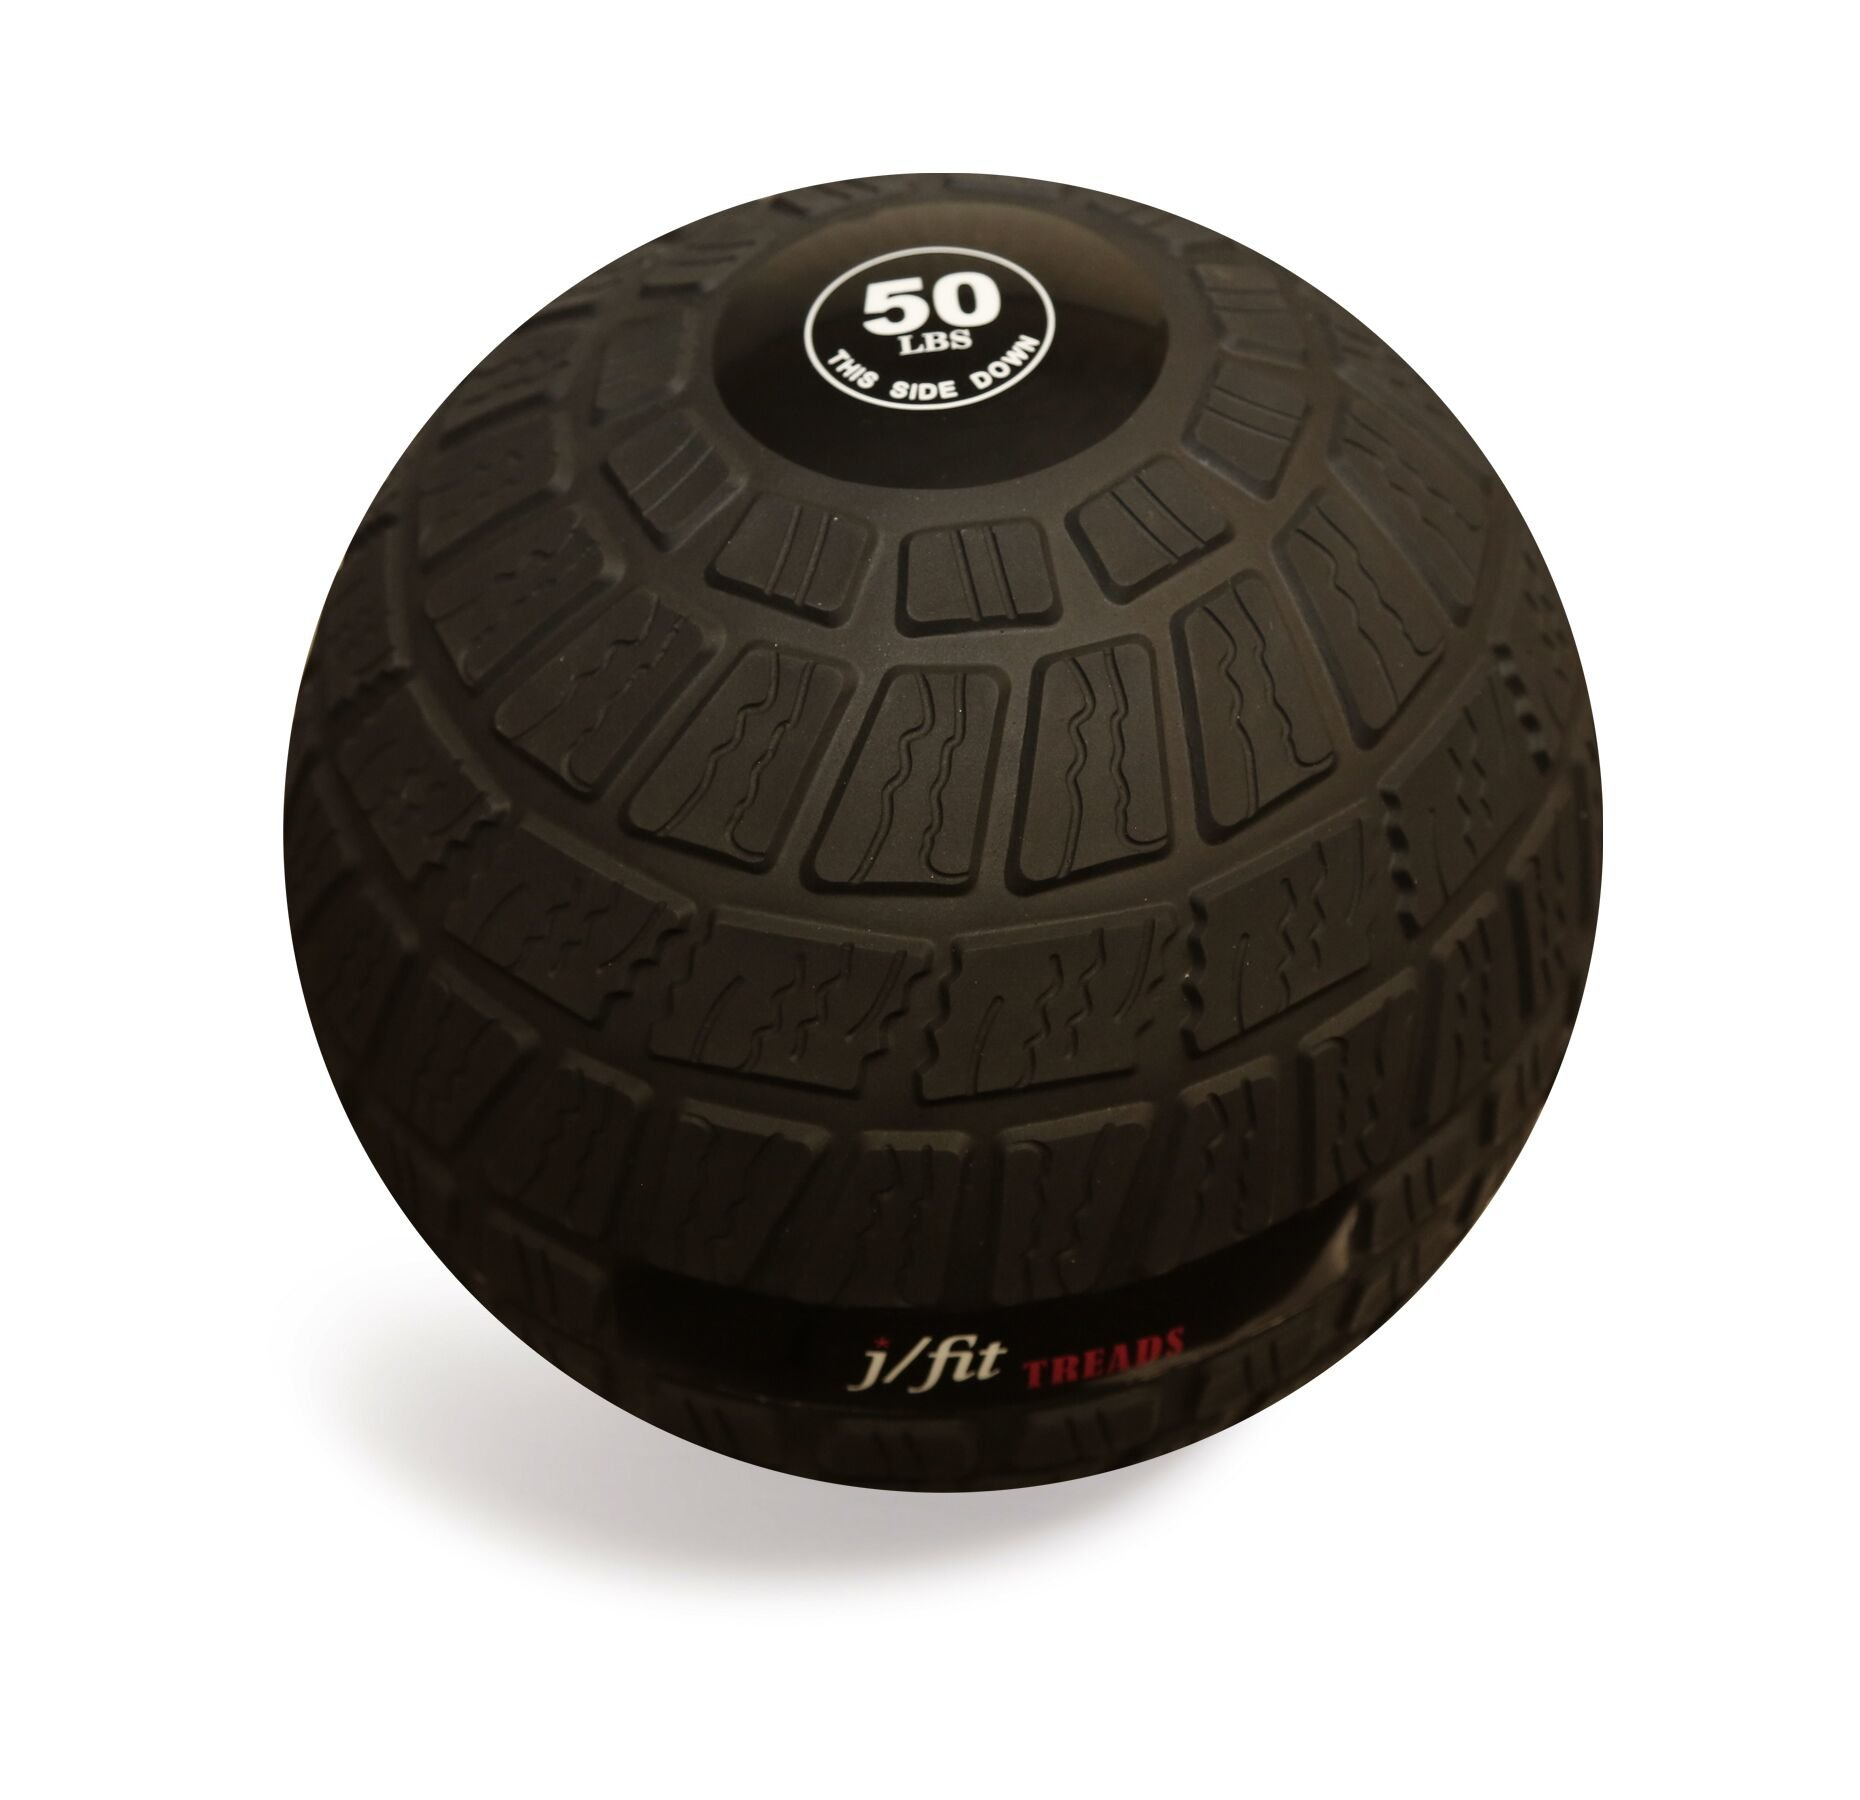 j/fit TREADS Dead Weight Slam Ball with Easy-Grip Textured Surface, 50 lb